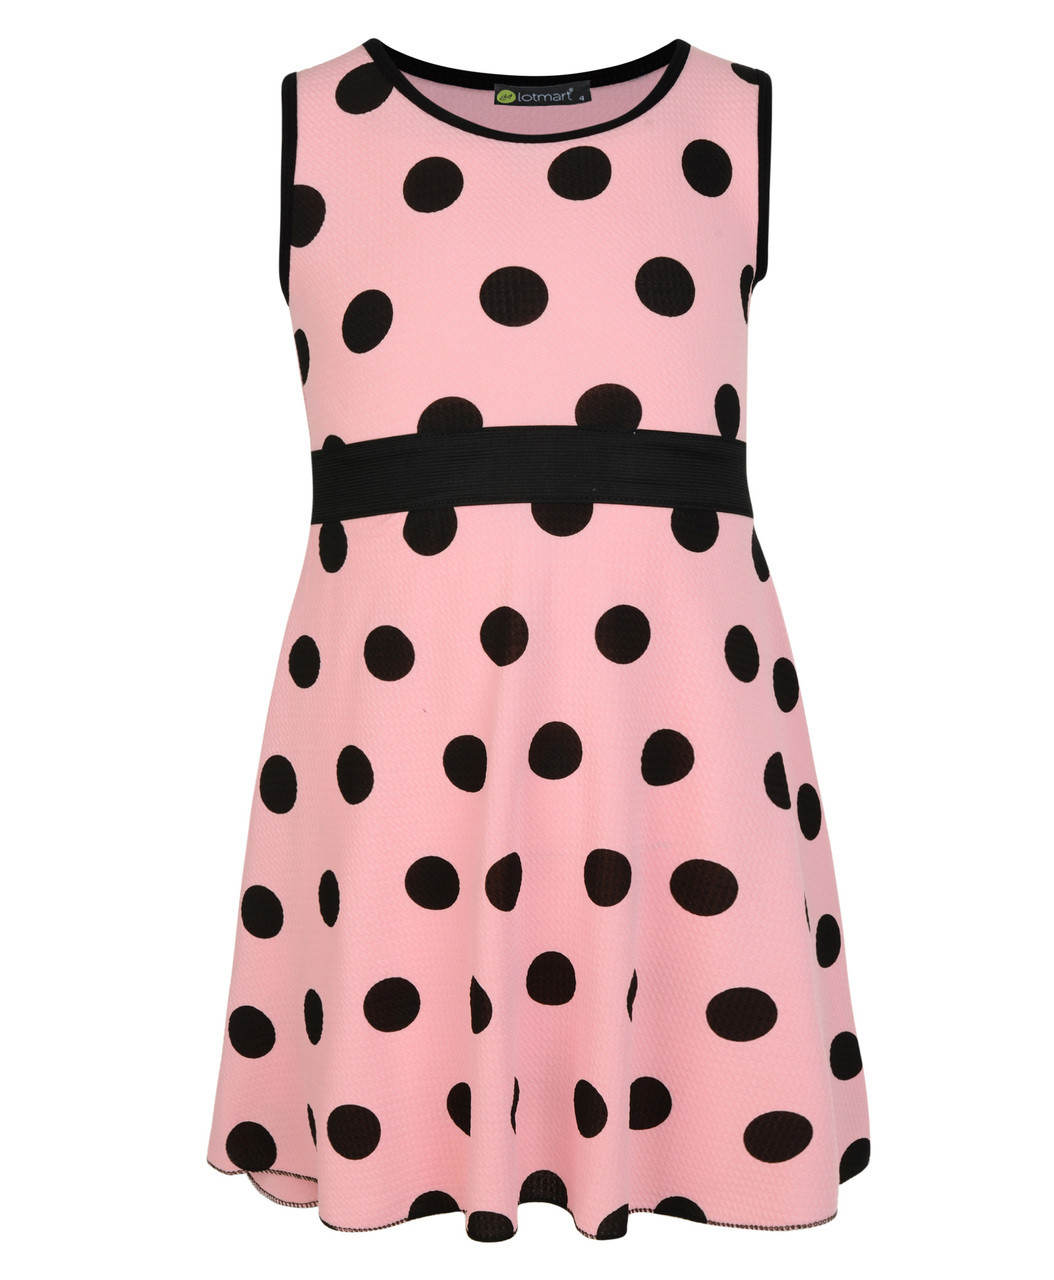 a93bc9d33a5d Girls All Polka Dot Dress in Cerise, Peach, Red and Coral